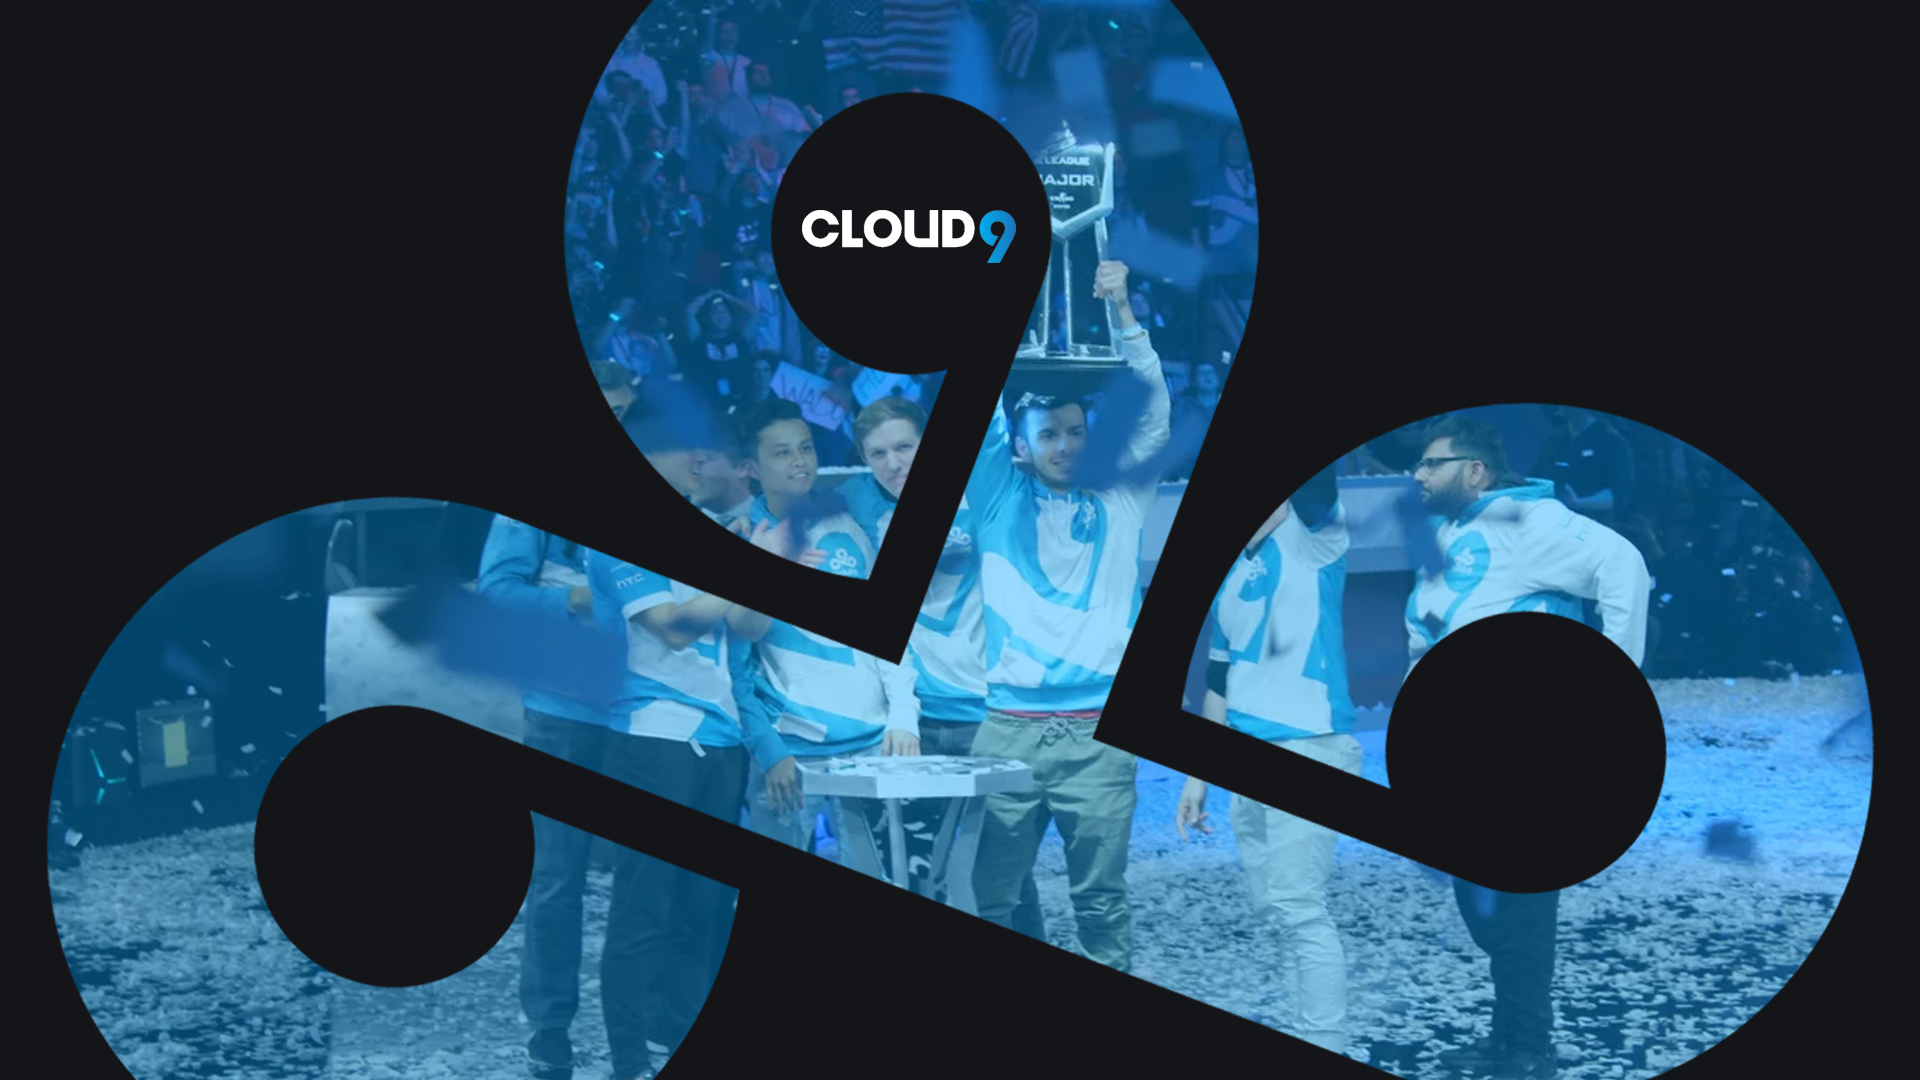 Cloud9 Champions Wallpaper v2